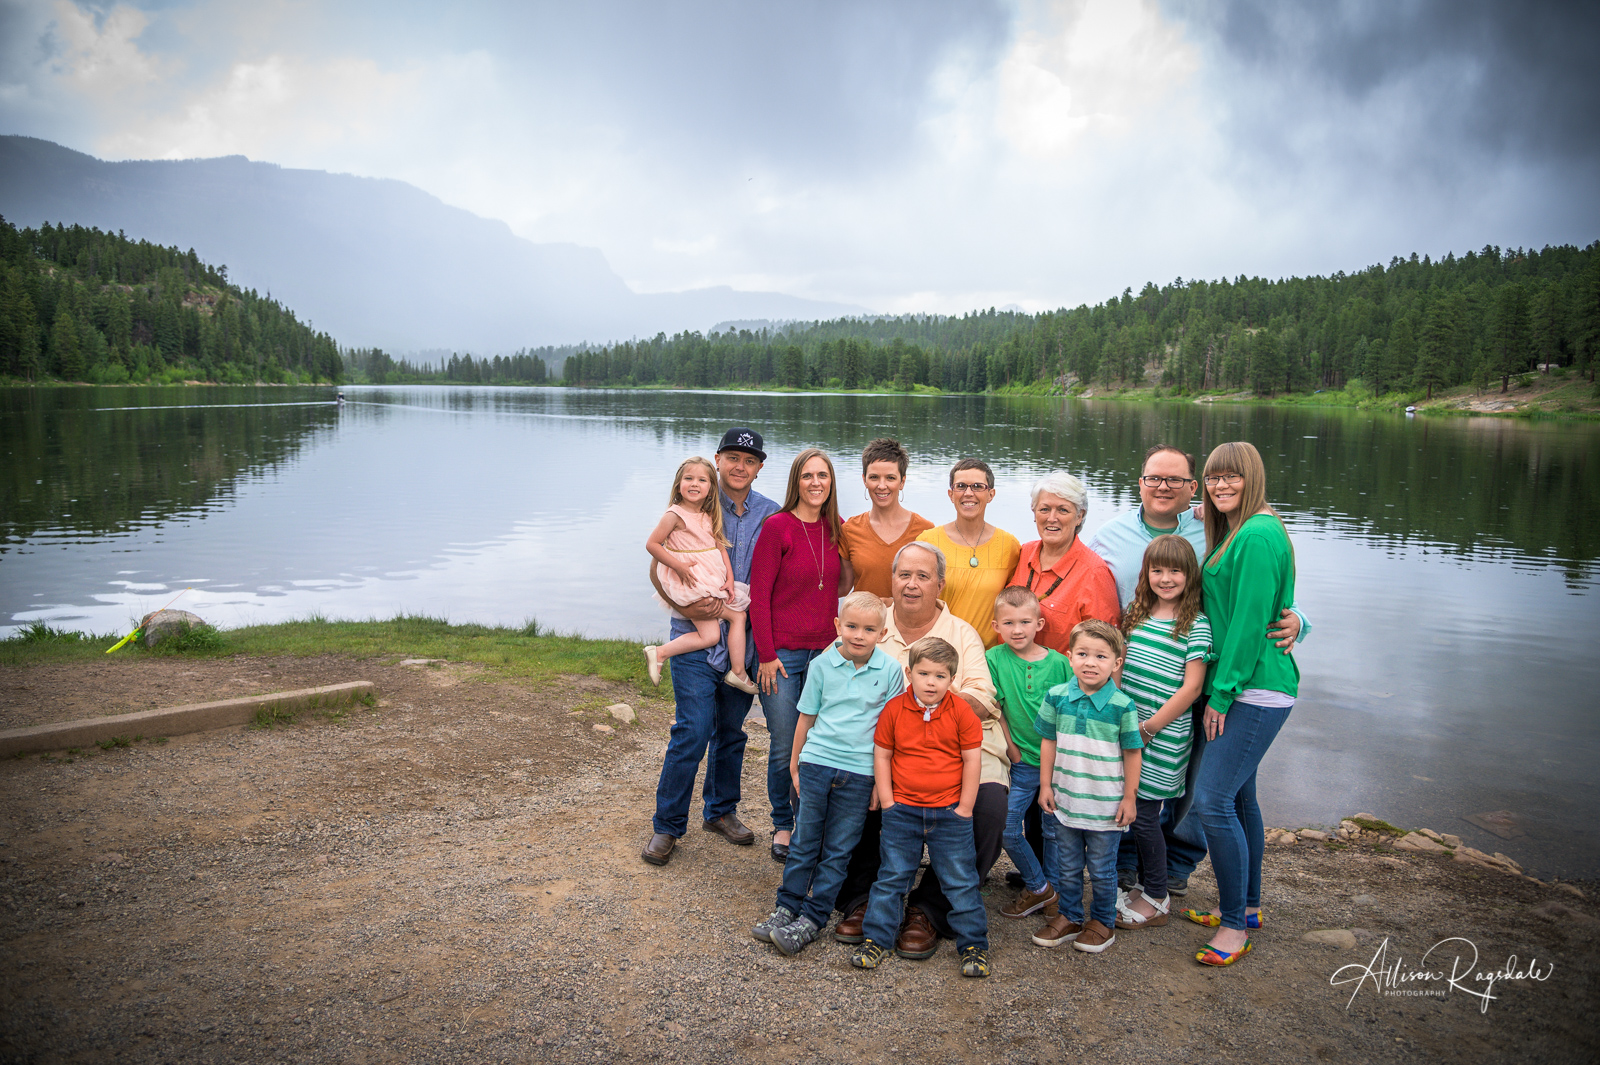 Outdoor landscape family photos, the Nygren Family